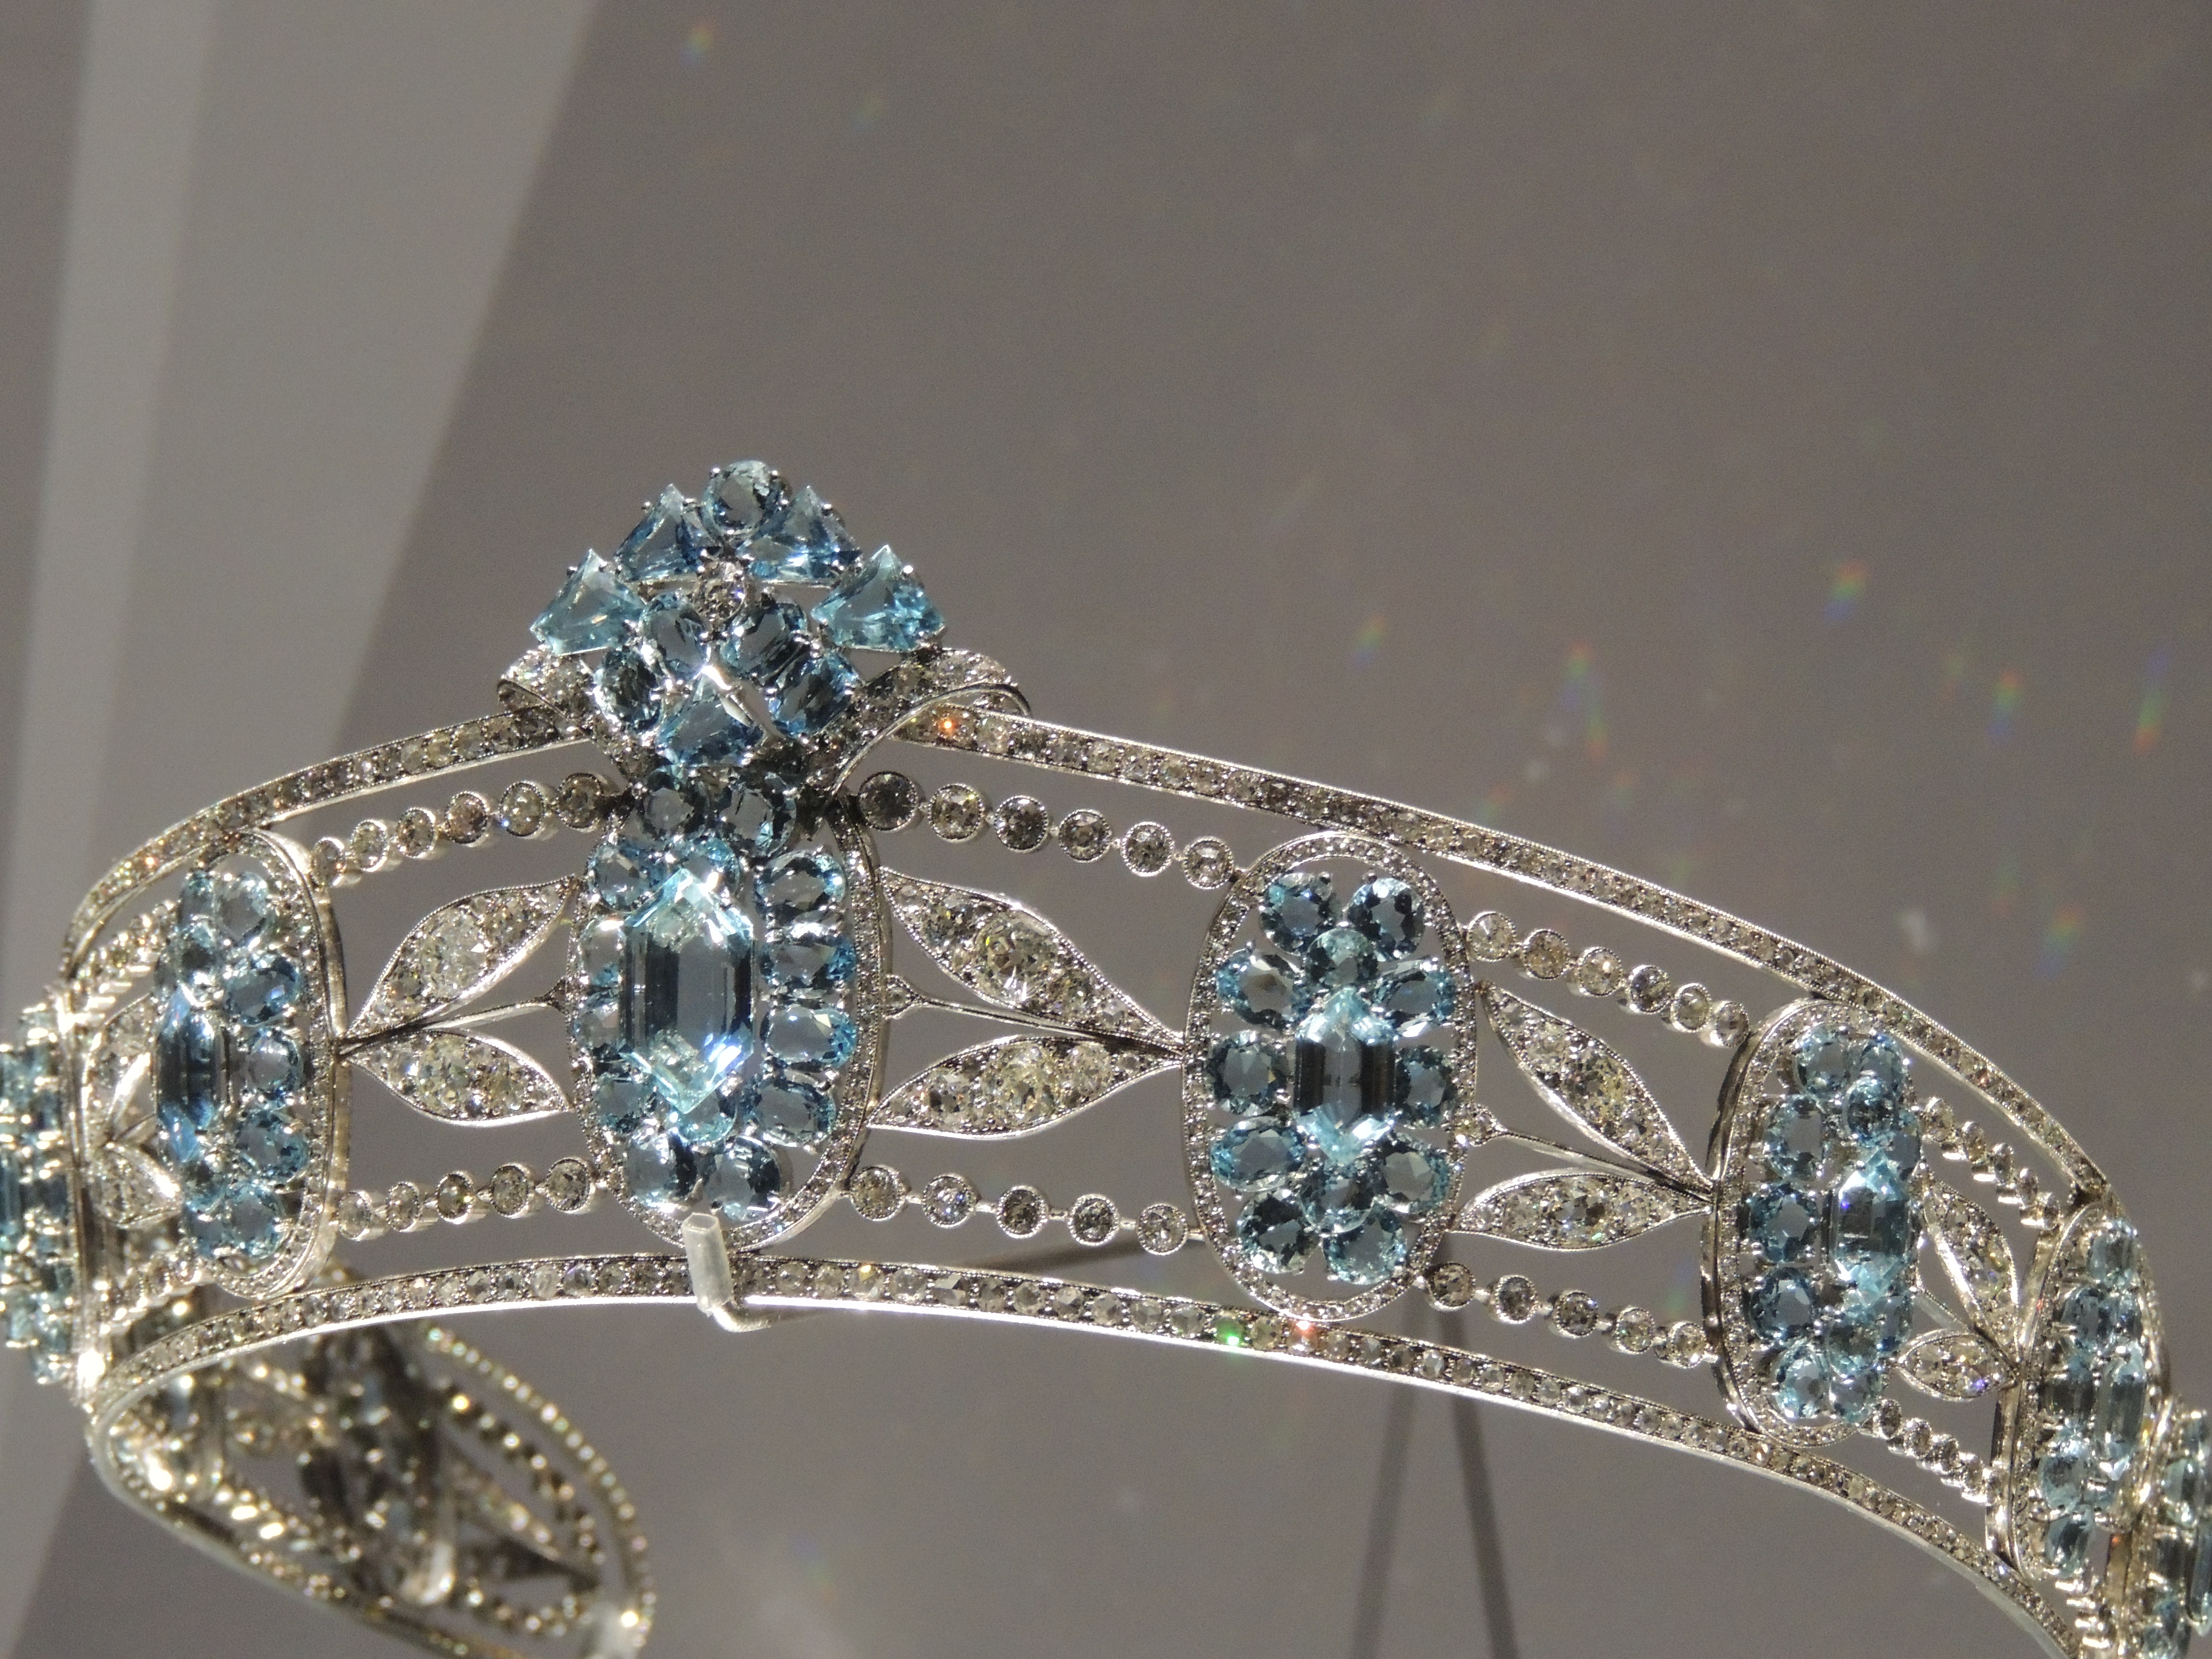 1000 Images About Tiaras On Pinterest Diamond Tiara